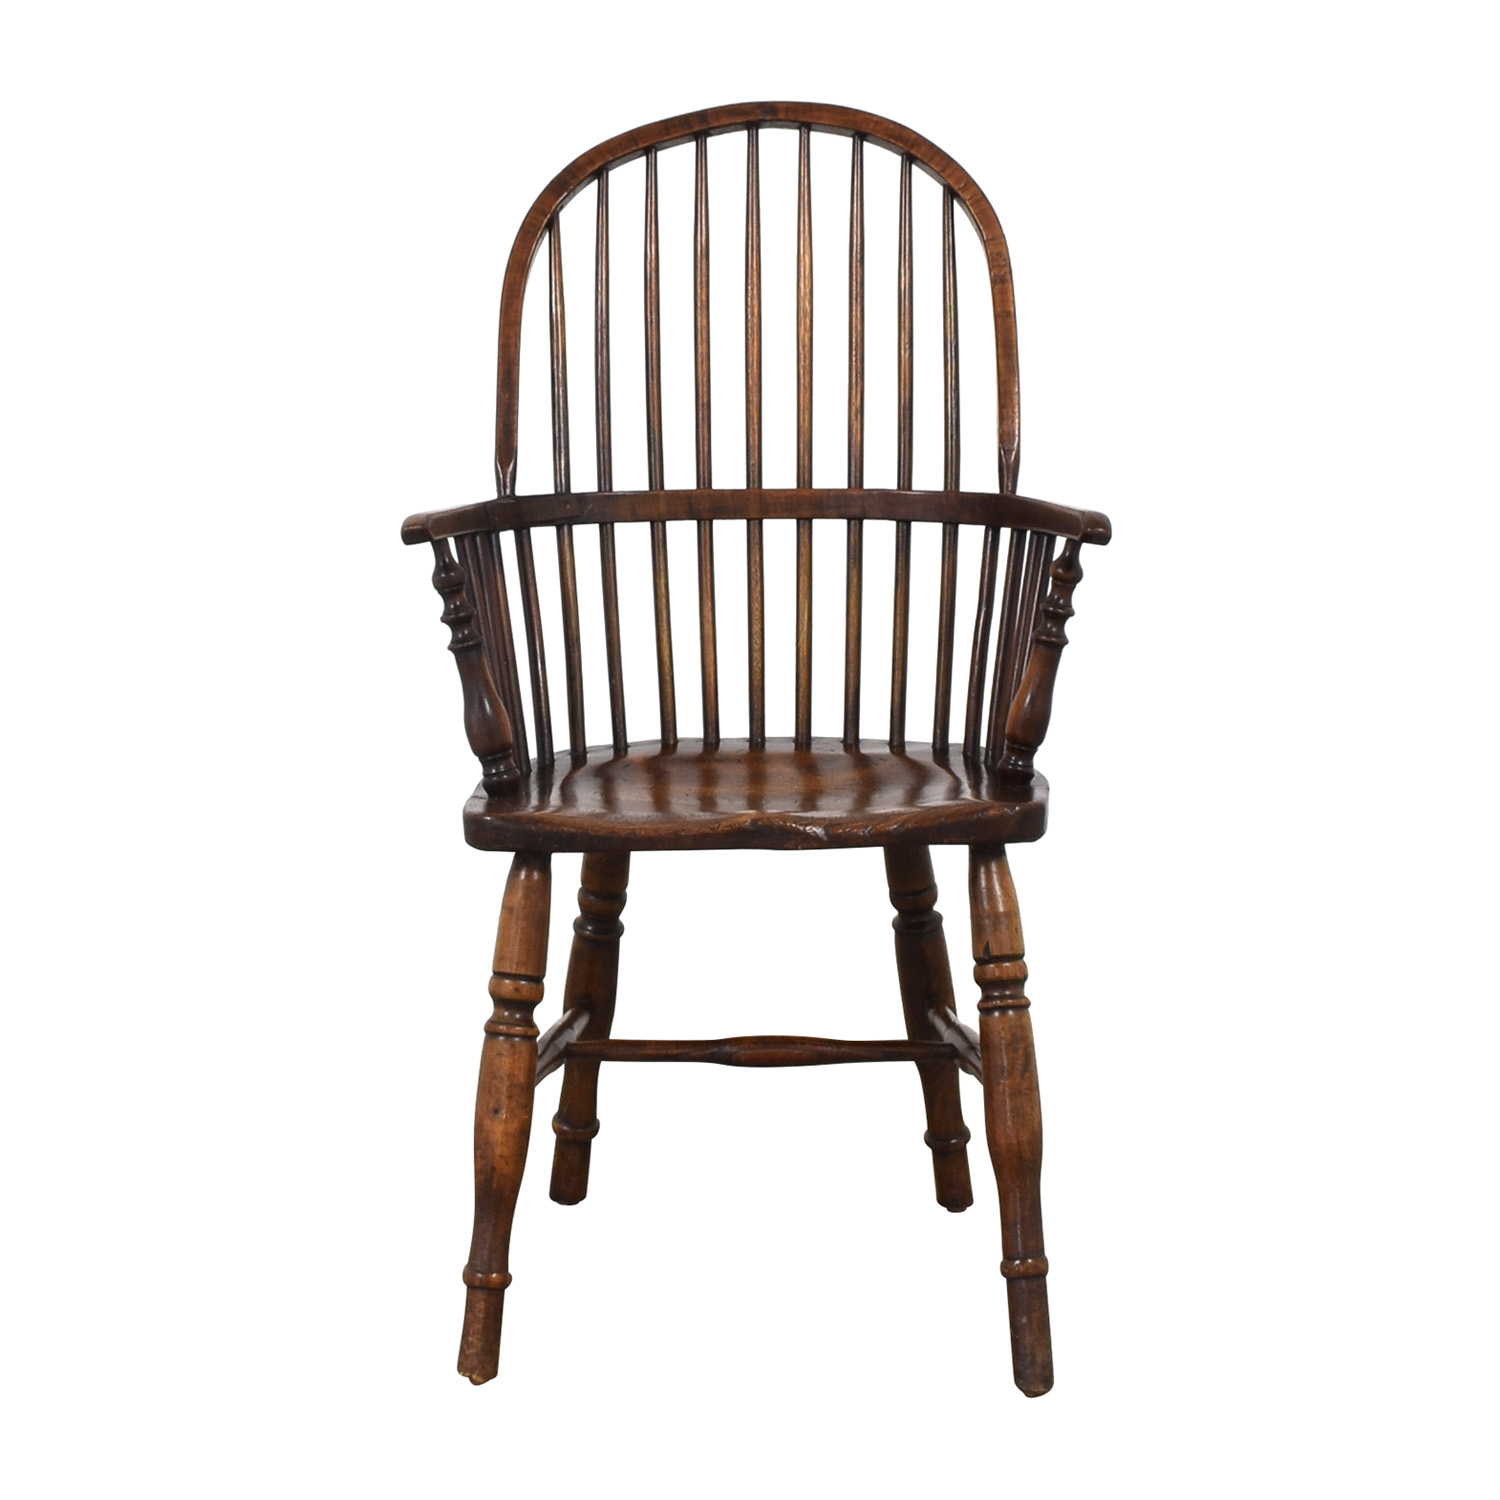 Antique Windsor Arm Chair / Dining Chairs